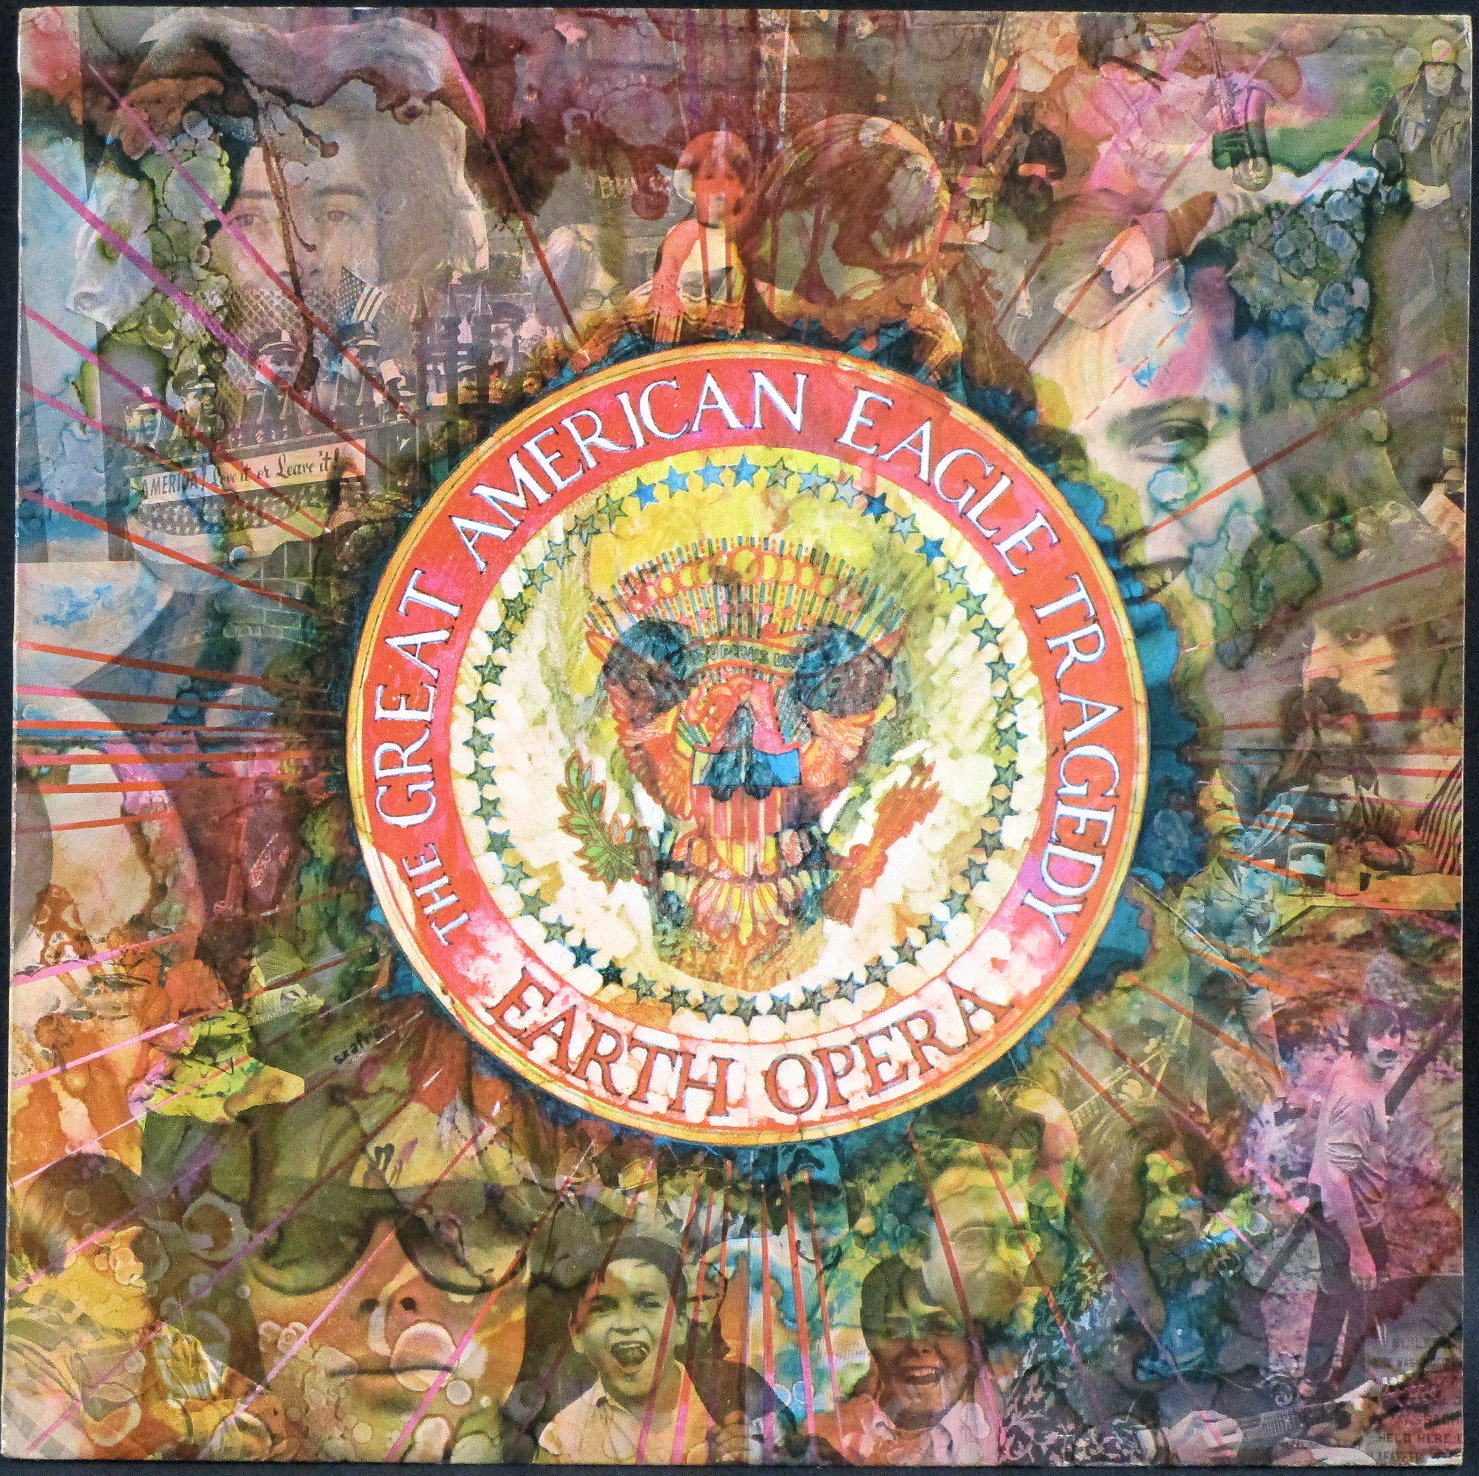 Earth Opera アース・オペラ / The Great American Eagle Tragedy